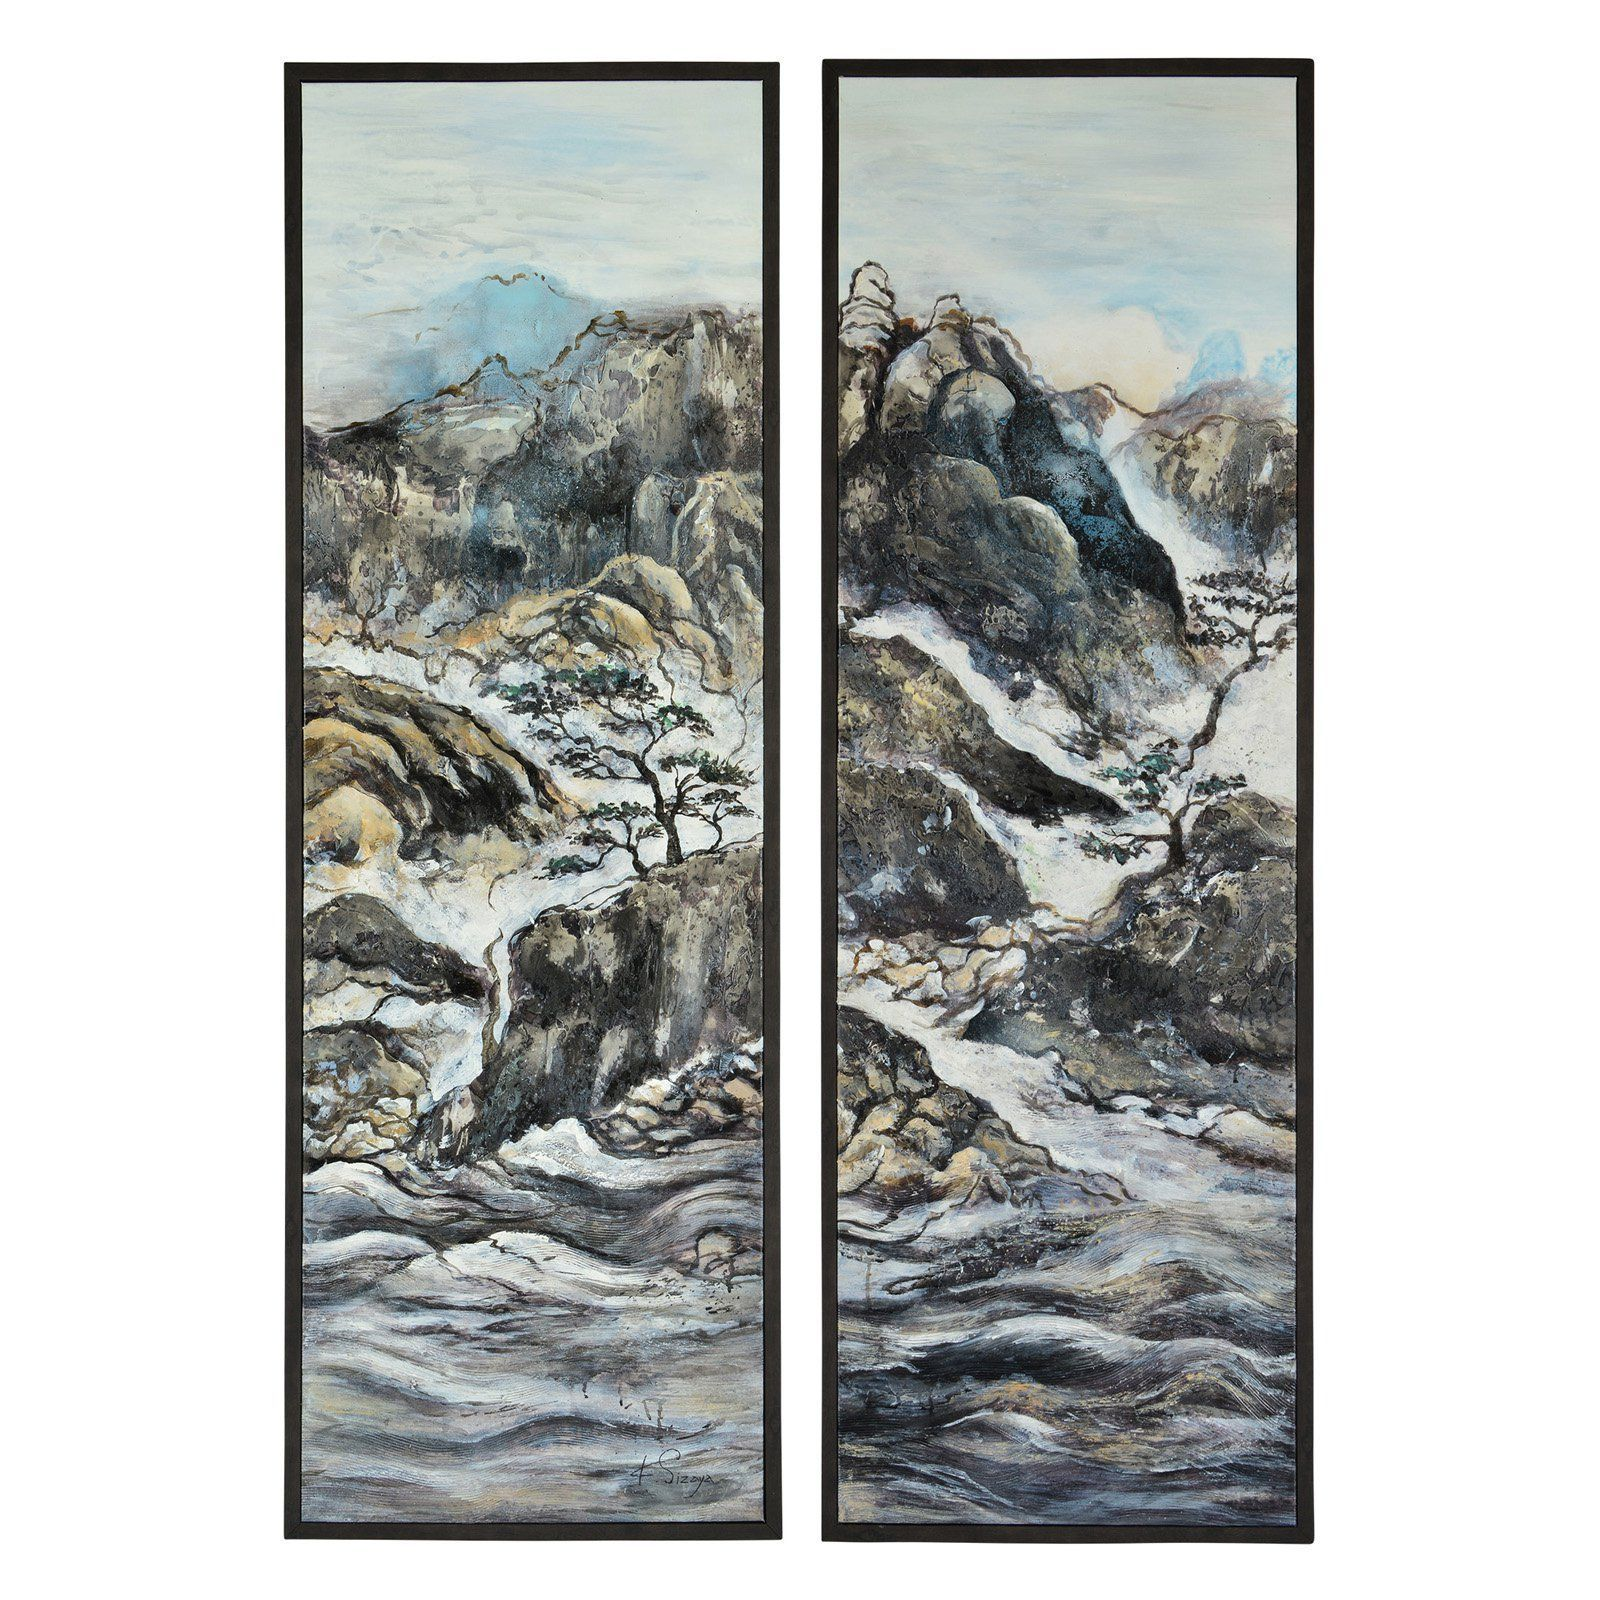 Renwil Supra Framed Wall Art - Set of 2 - OL1523   Products   Pinterest